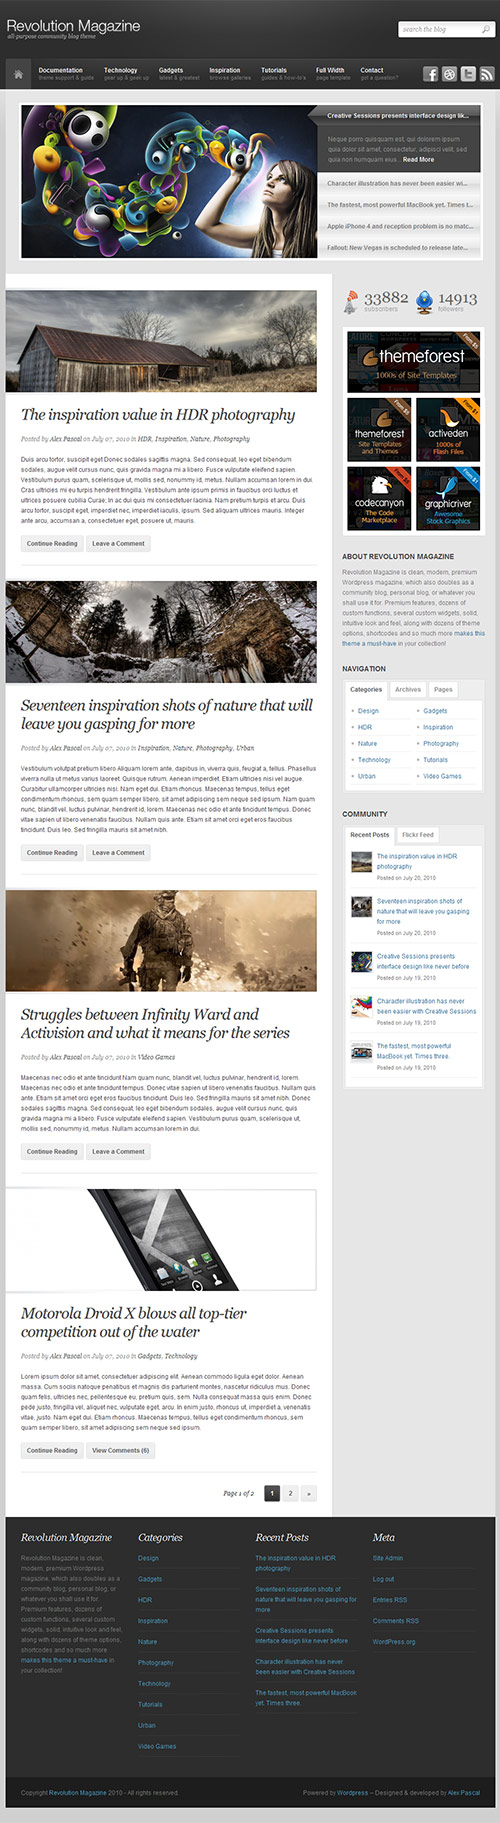 Revolution Magazine Theme - great magazine wordpress themes